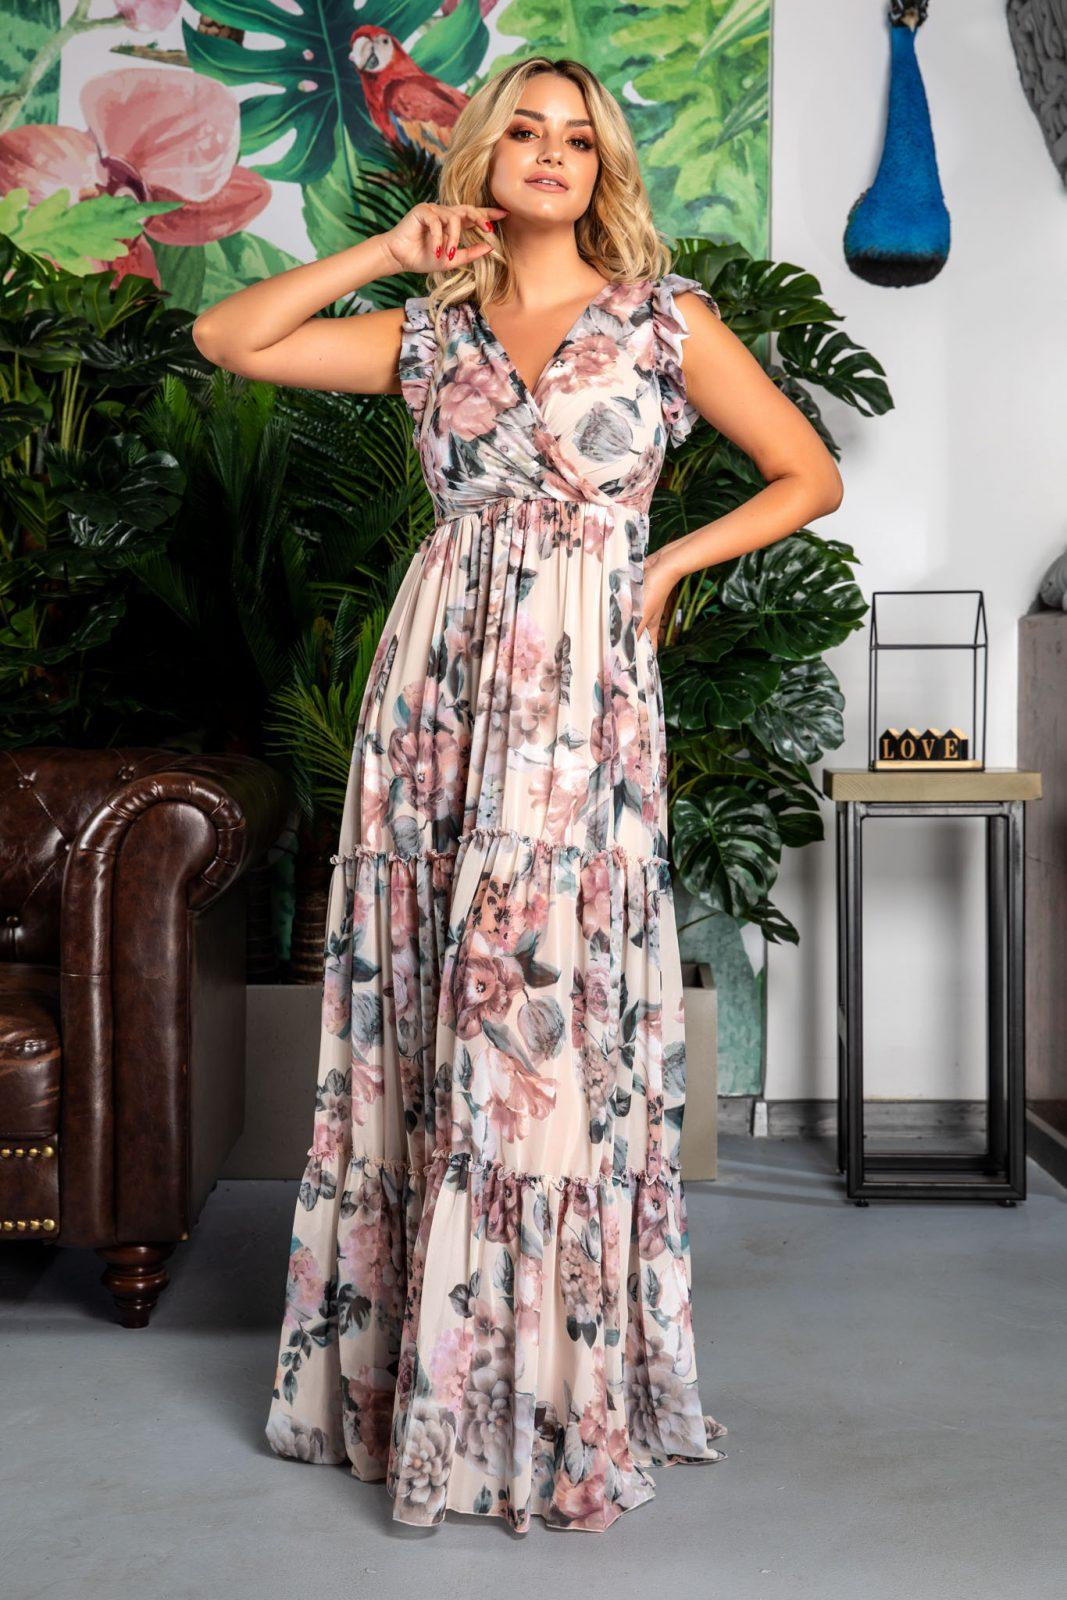 Evelyn Rose Floral Dress